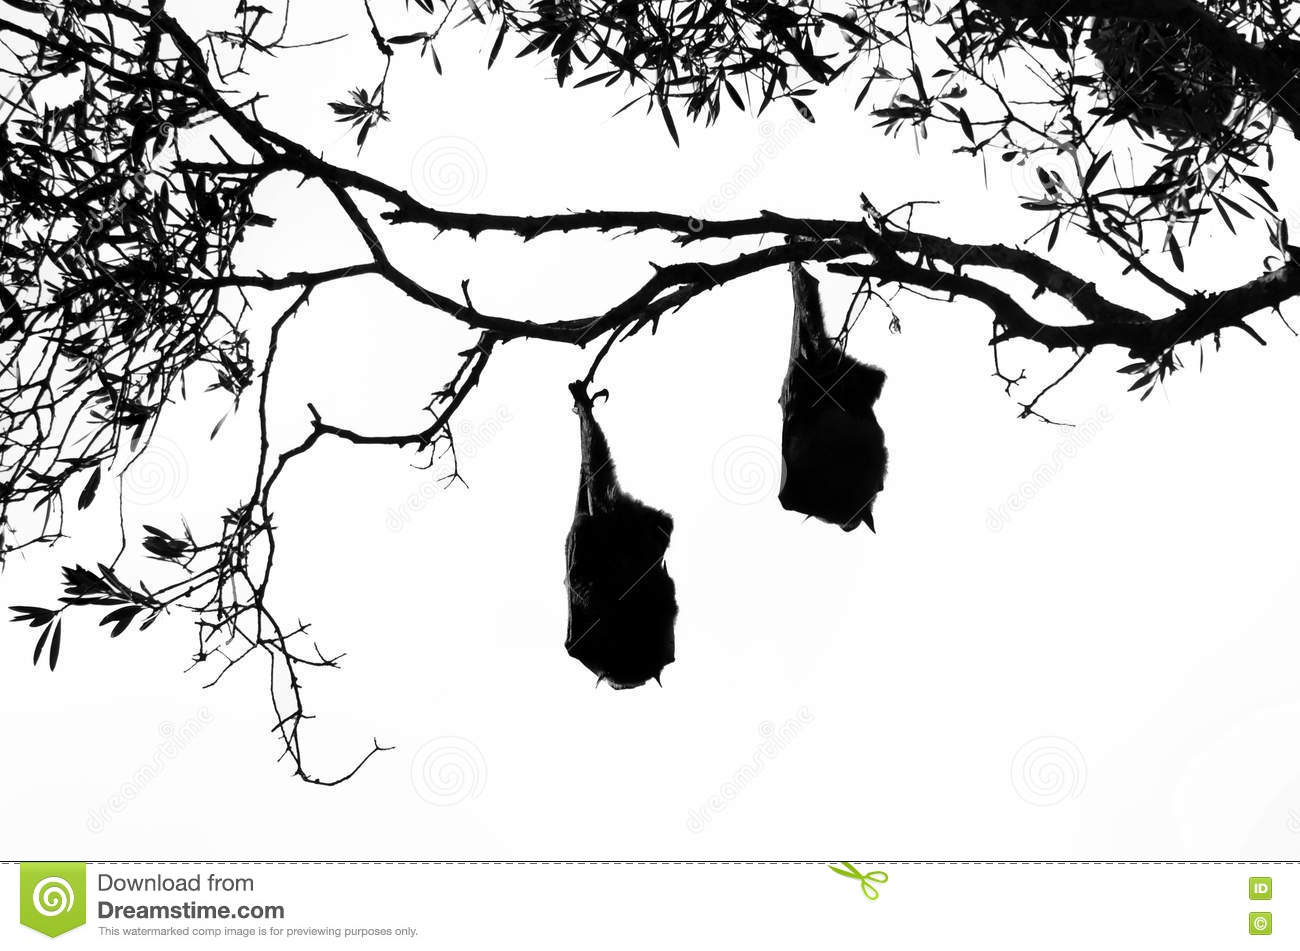 Two fruit bats hanging from a tree in silhouette